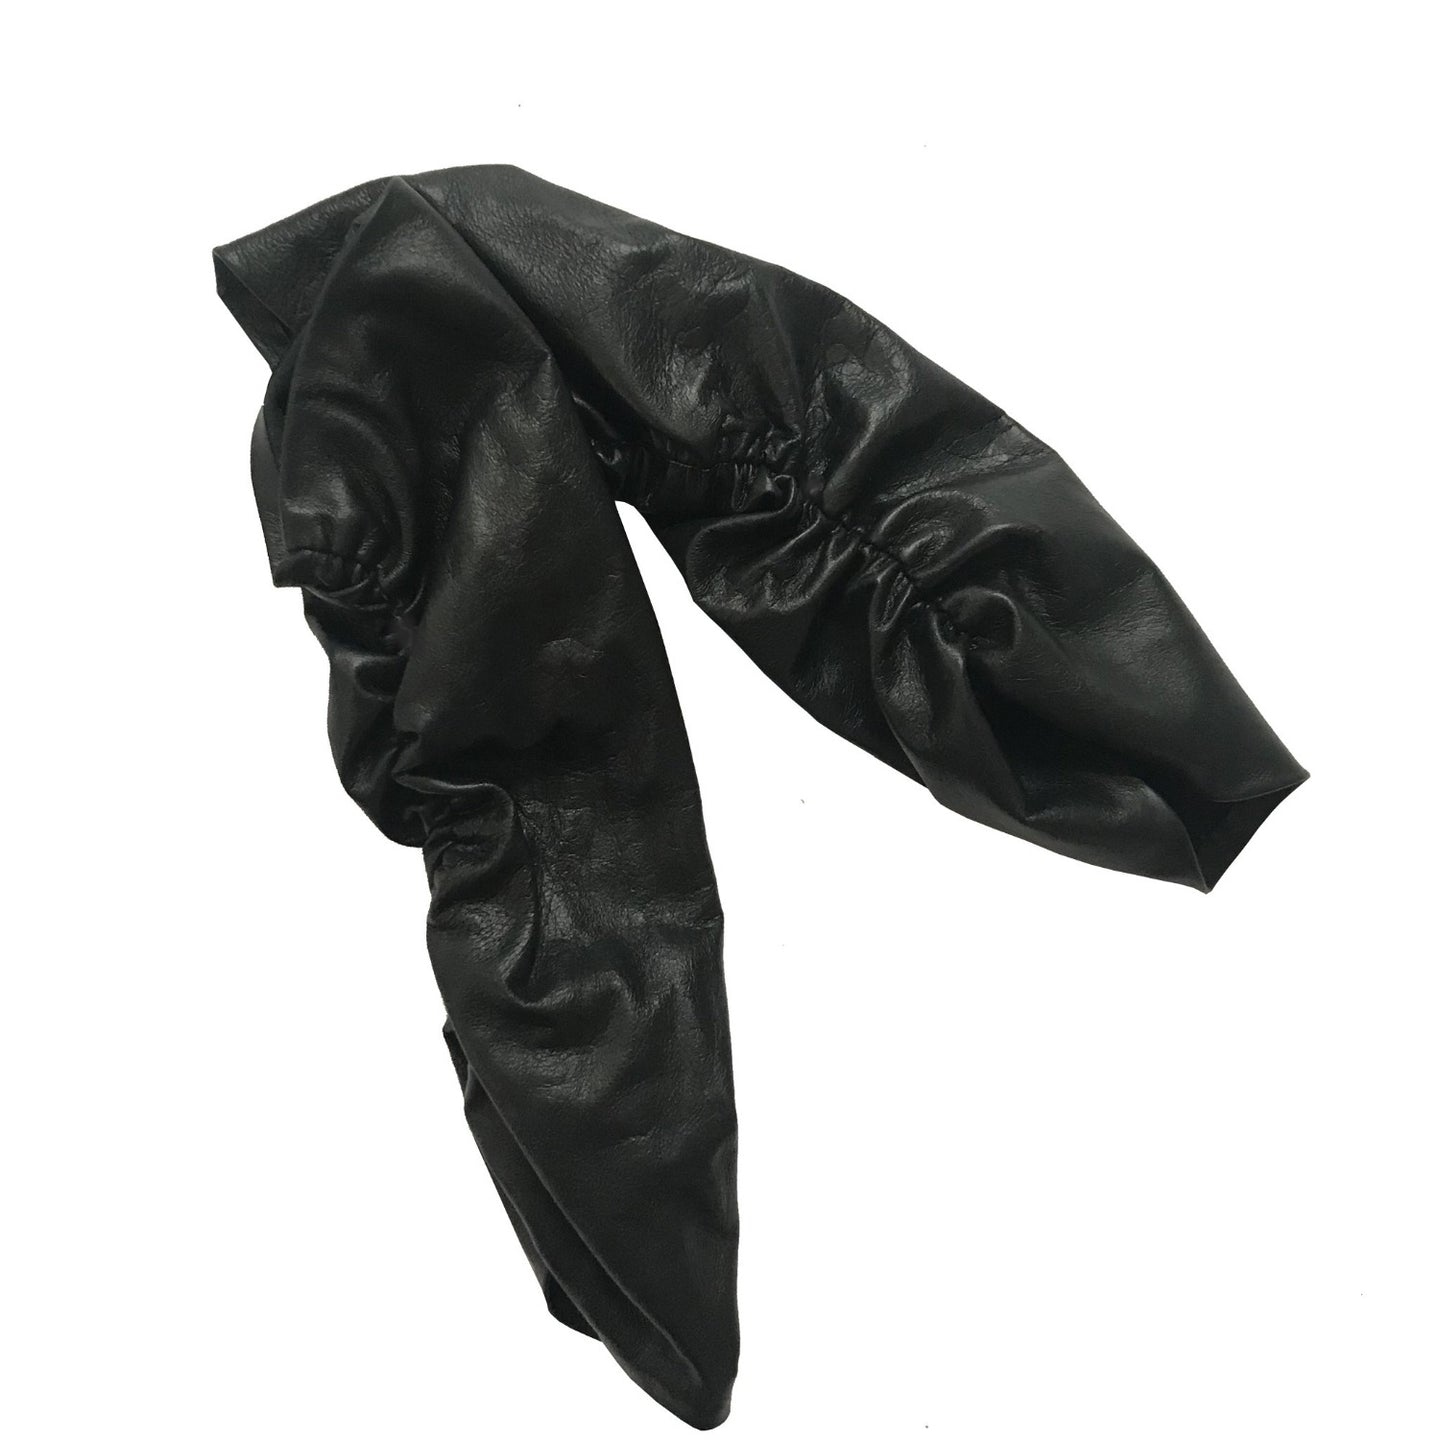 Pair of black leather arm sleeves with elastic